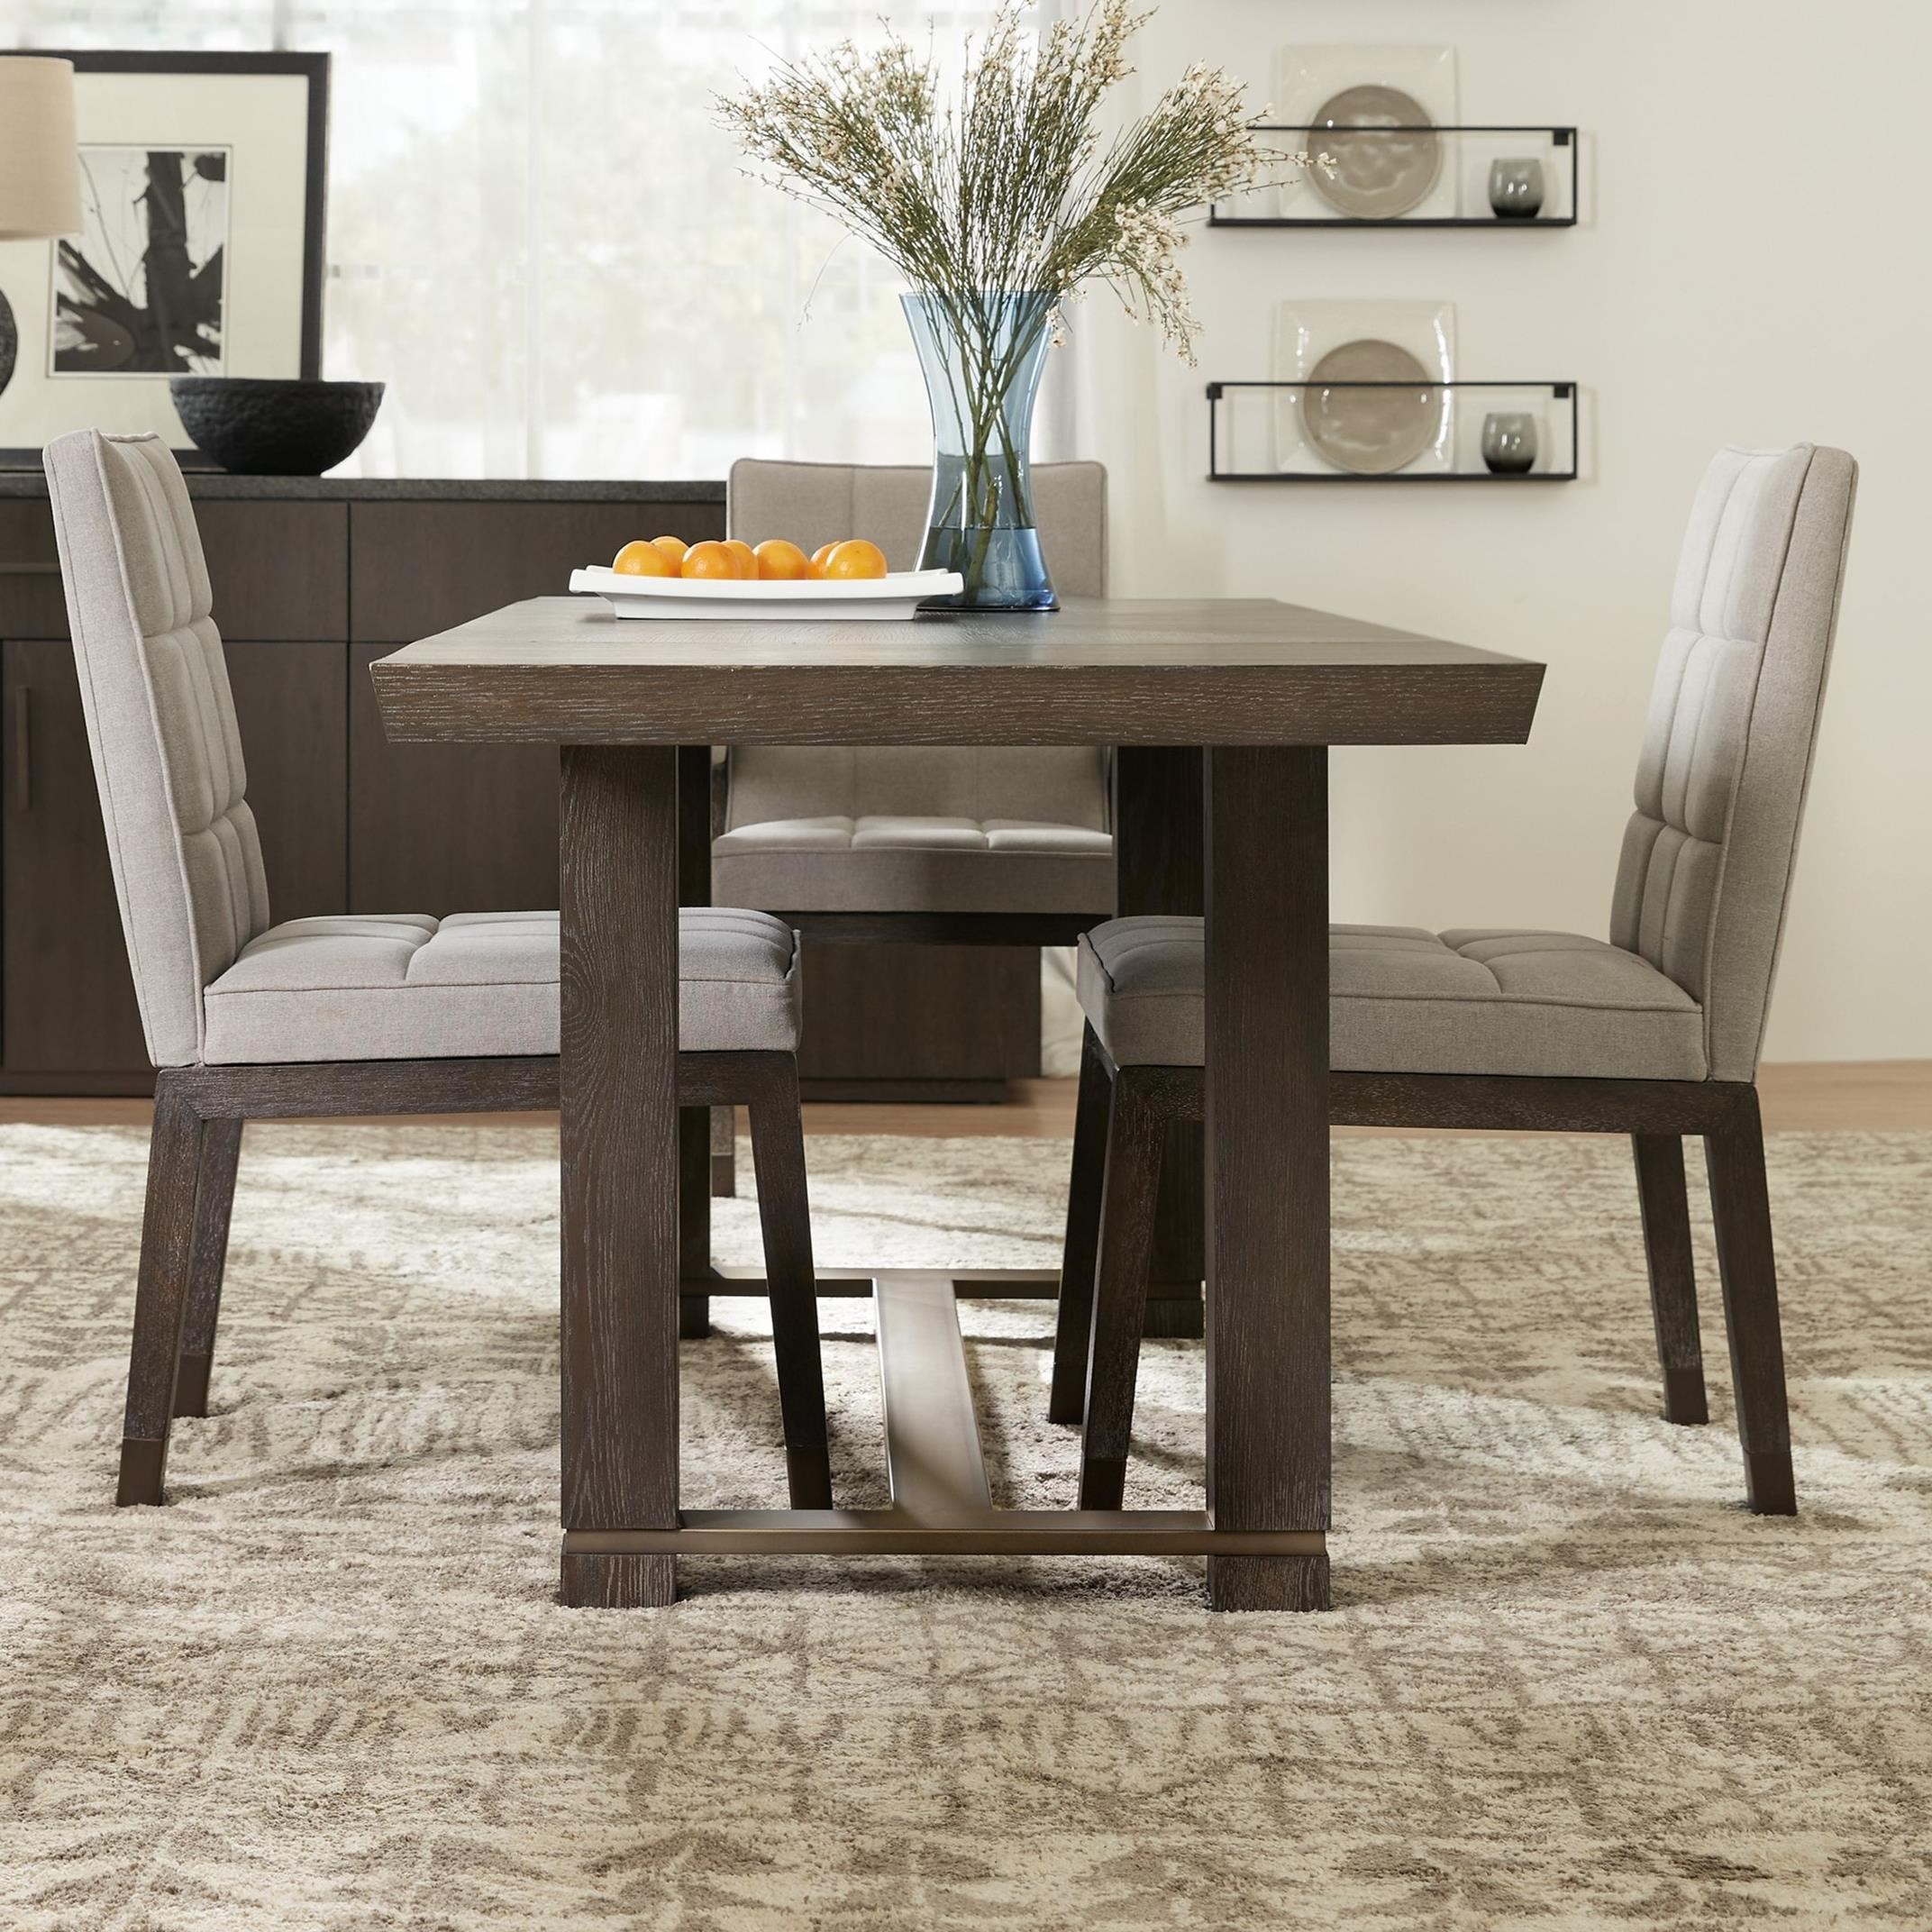 Miramar Aventura 4 Piece Adjustable Table and Chair Set by Hooker Furniture at Stoney Creek Furniture